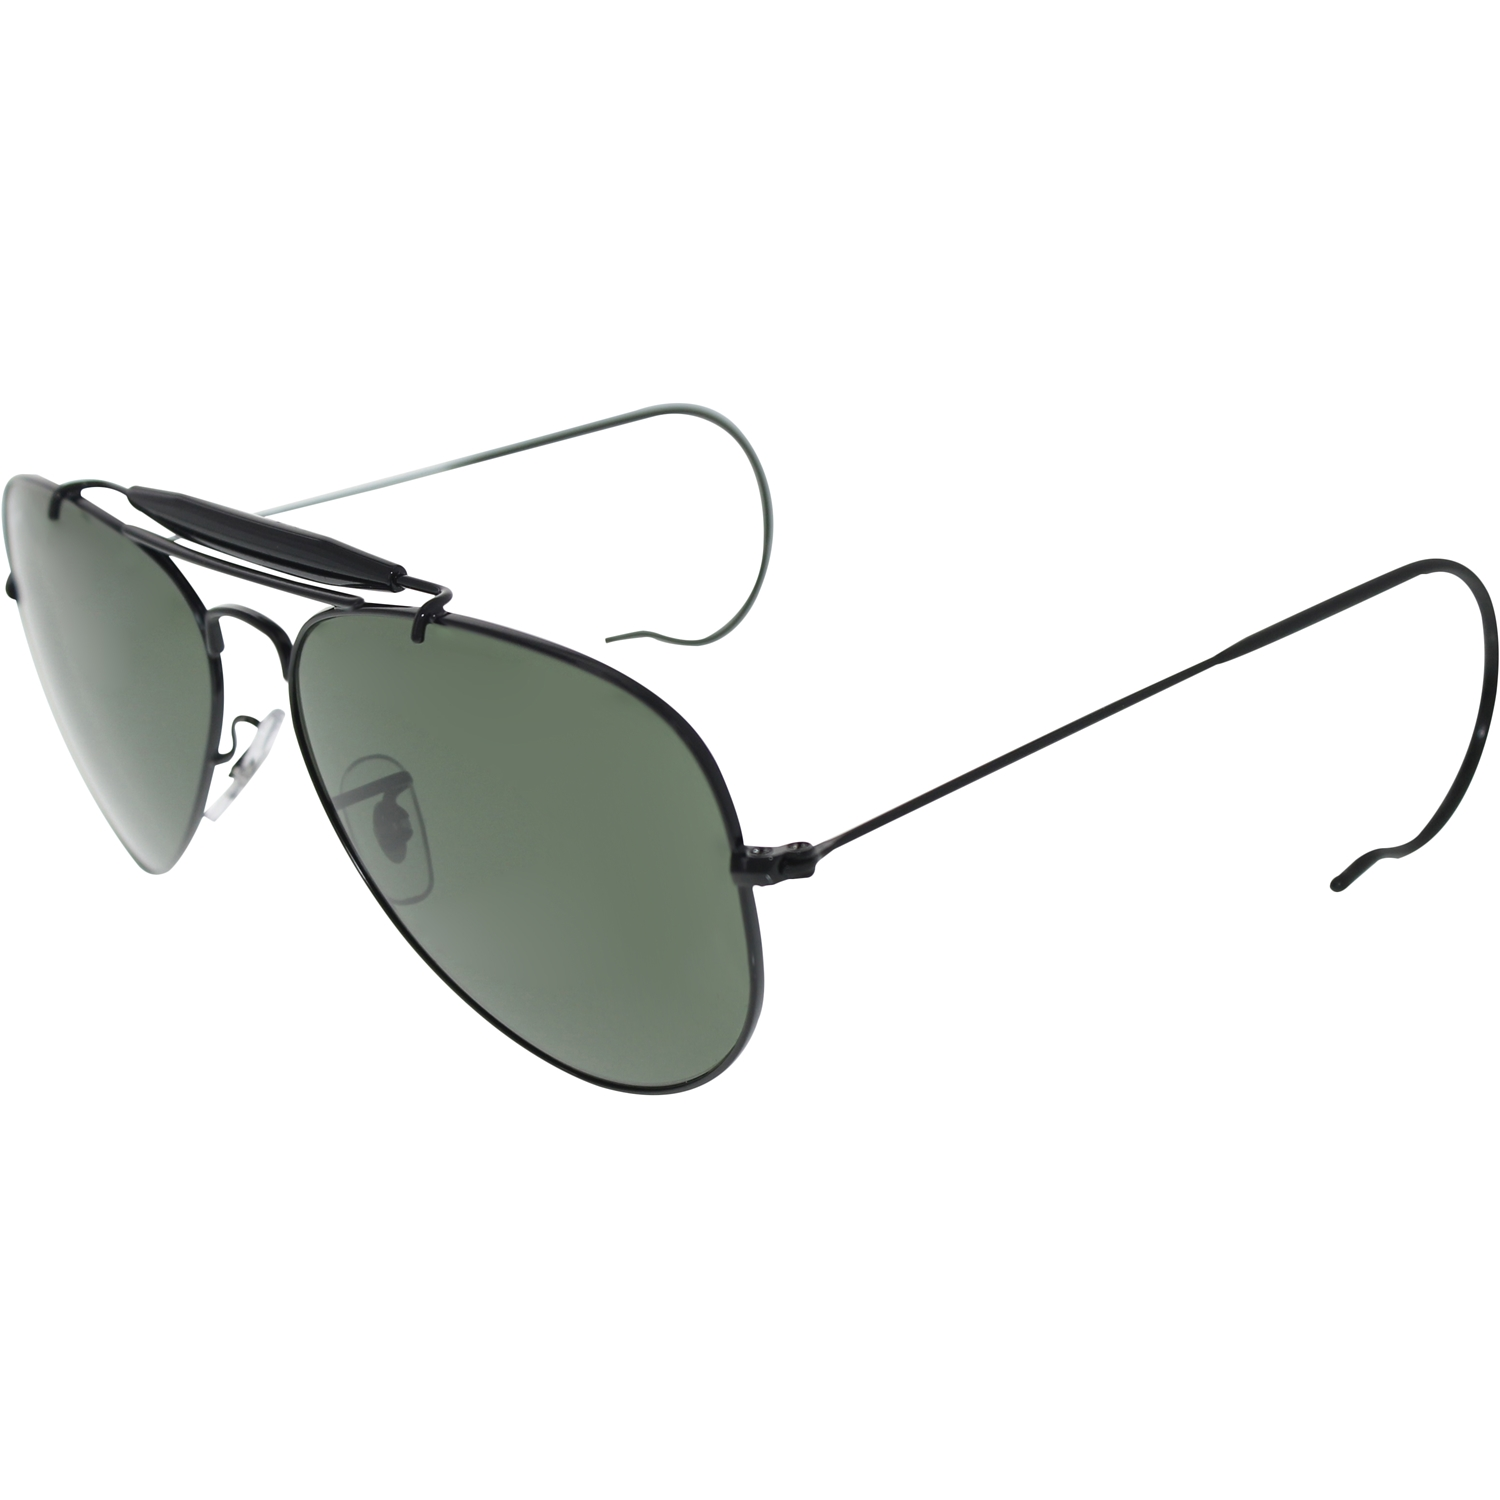 09837285d2 ray ban aviator outdoorsman